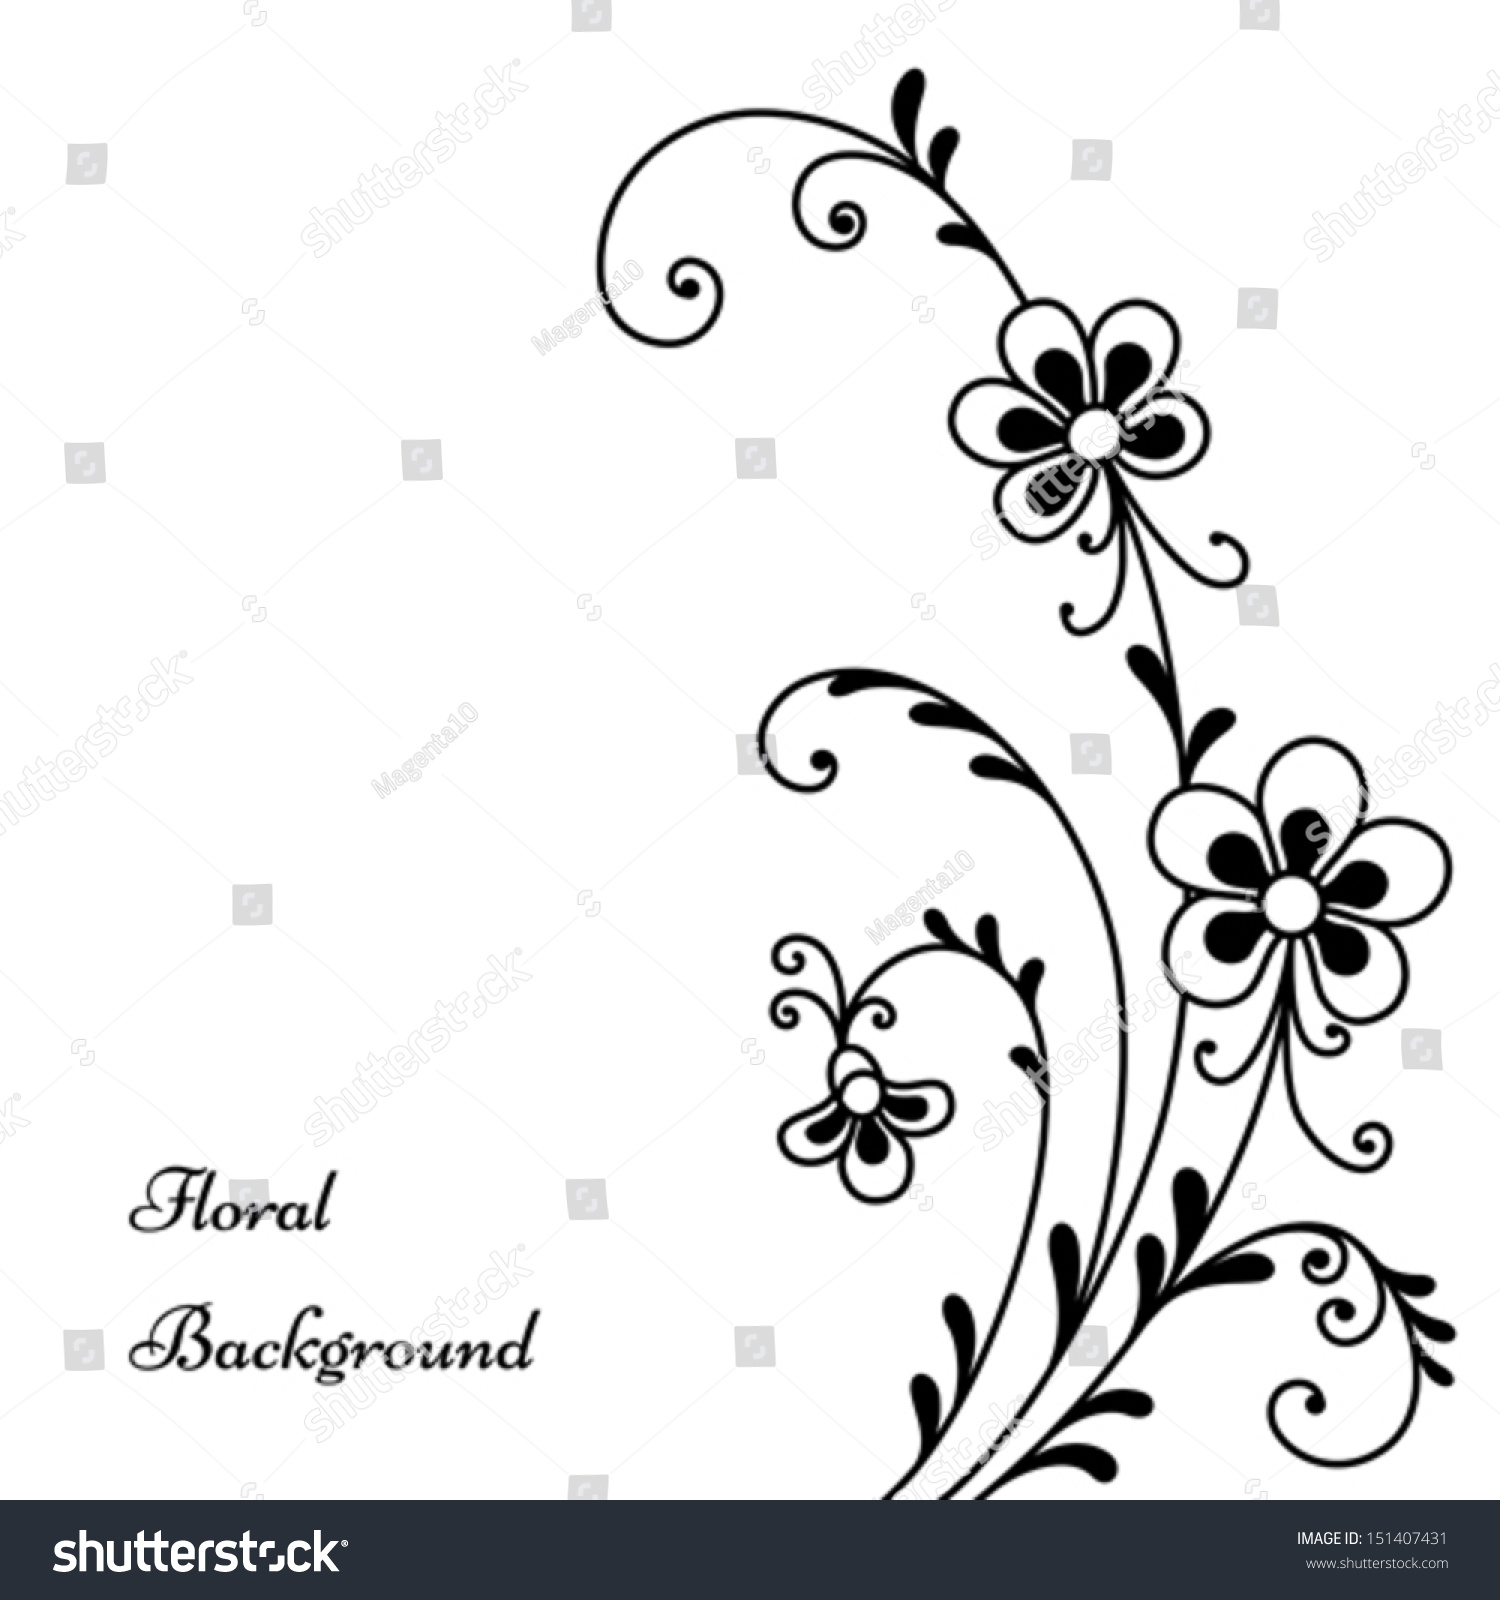 Abstract Flowers Black White Floral Background Stock Vector